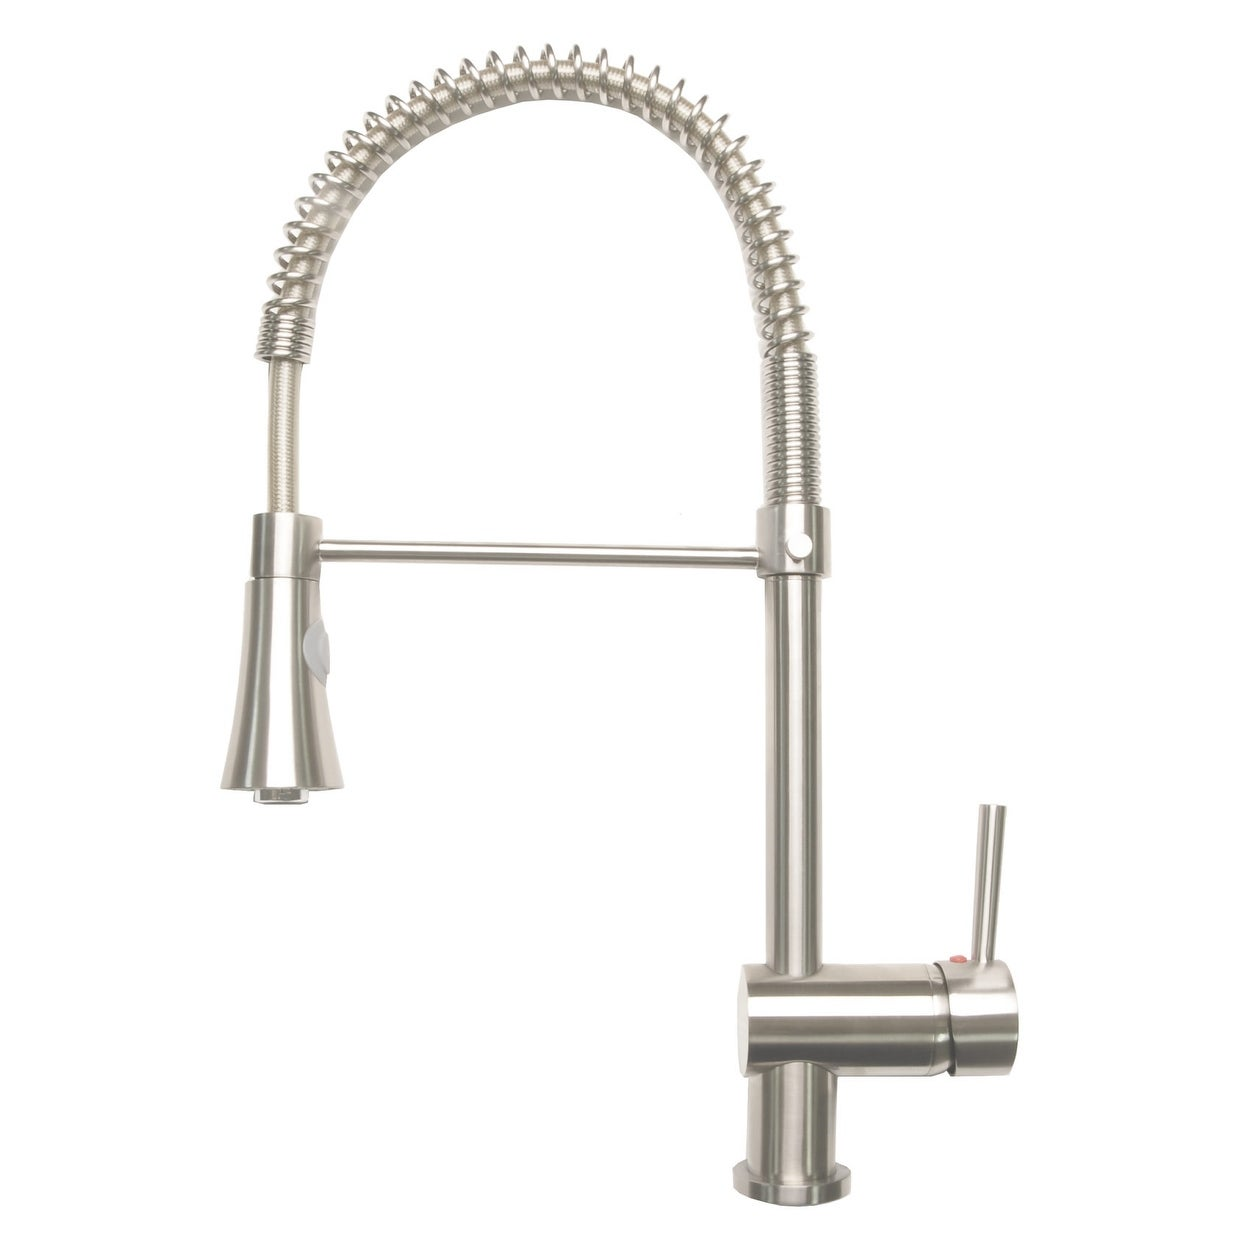 coiled down faucet kitchen ashford faucets front pull outdoor single spout stainless hole with spring